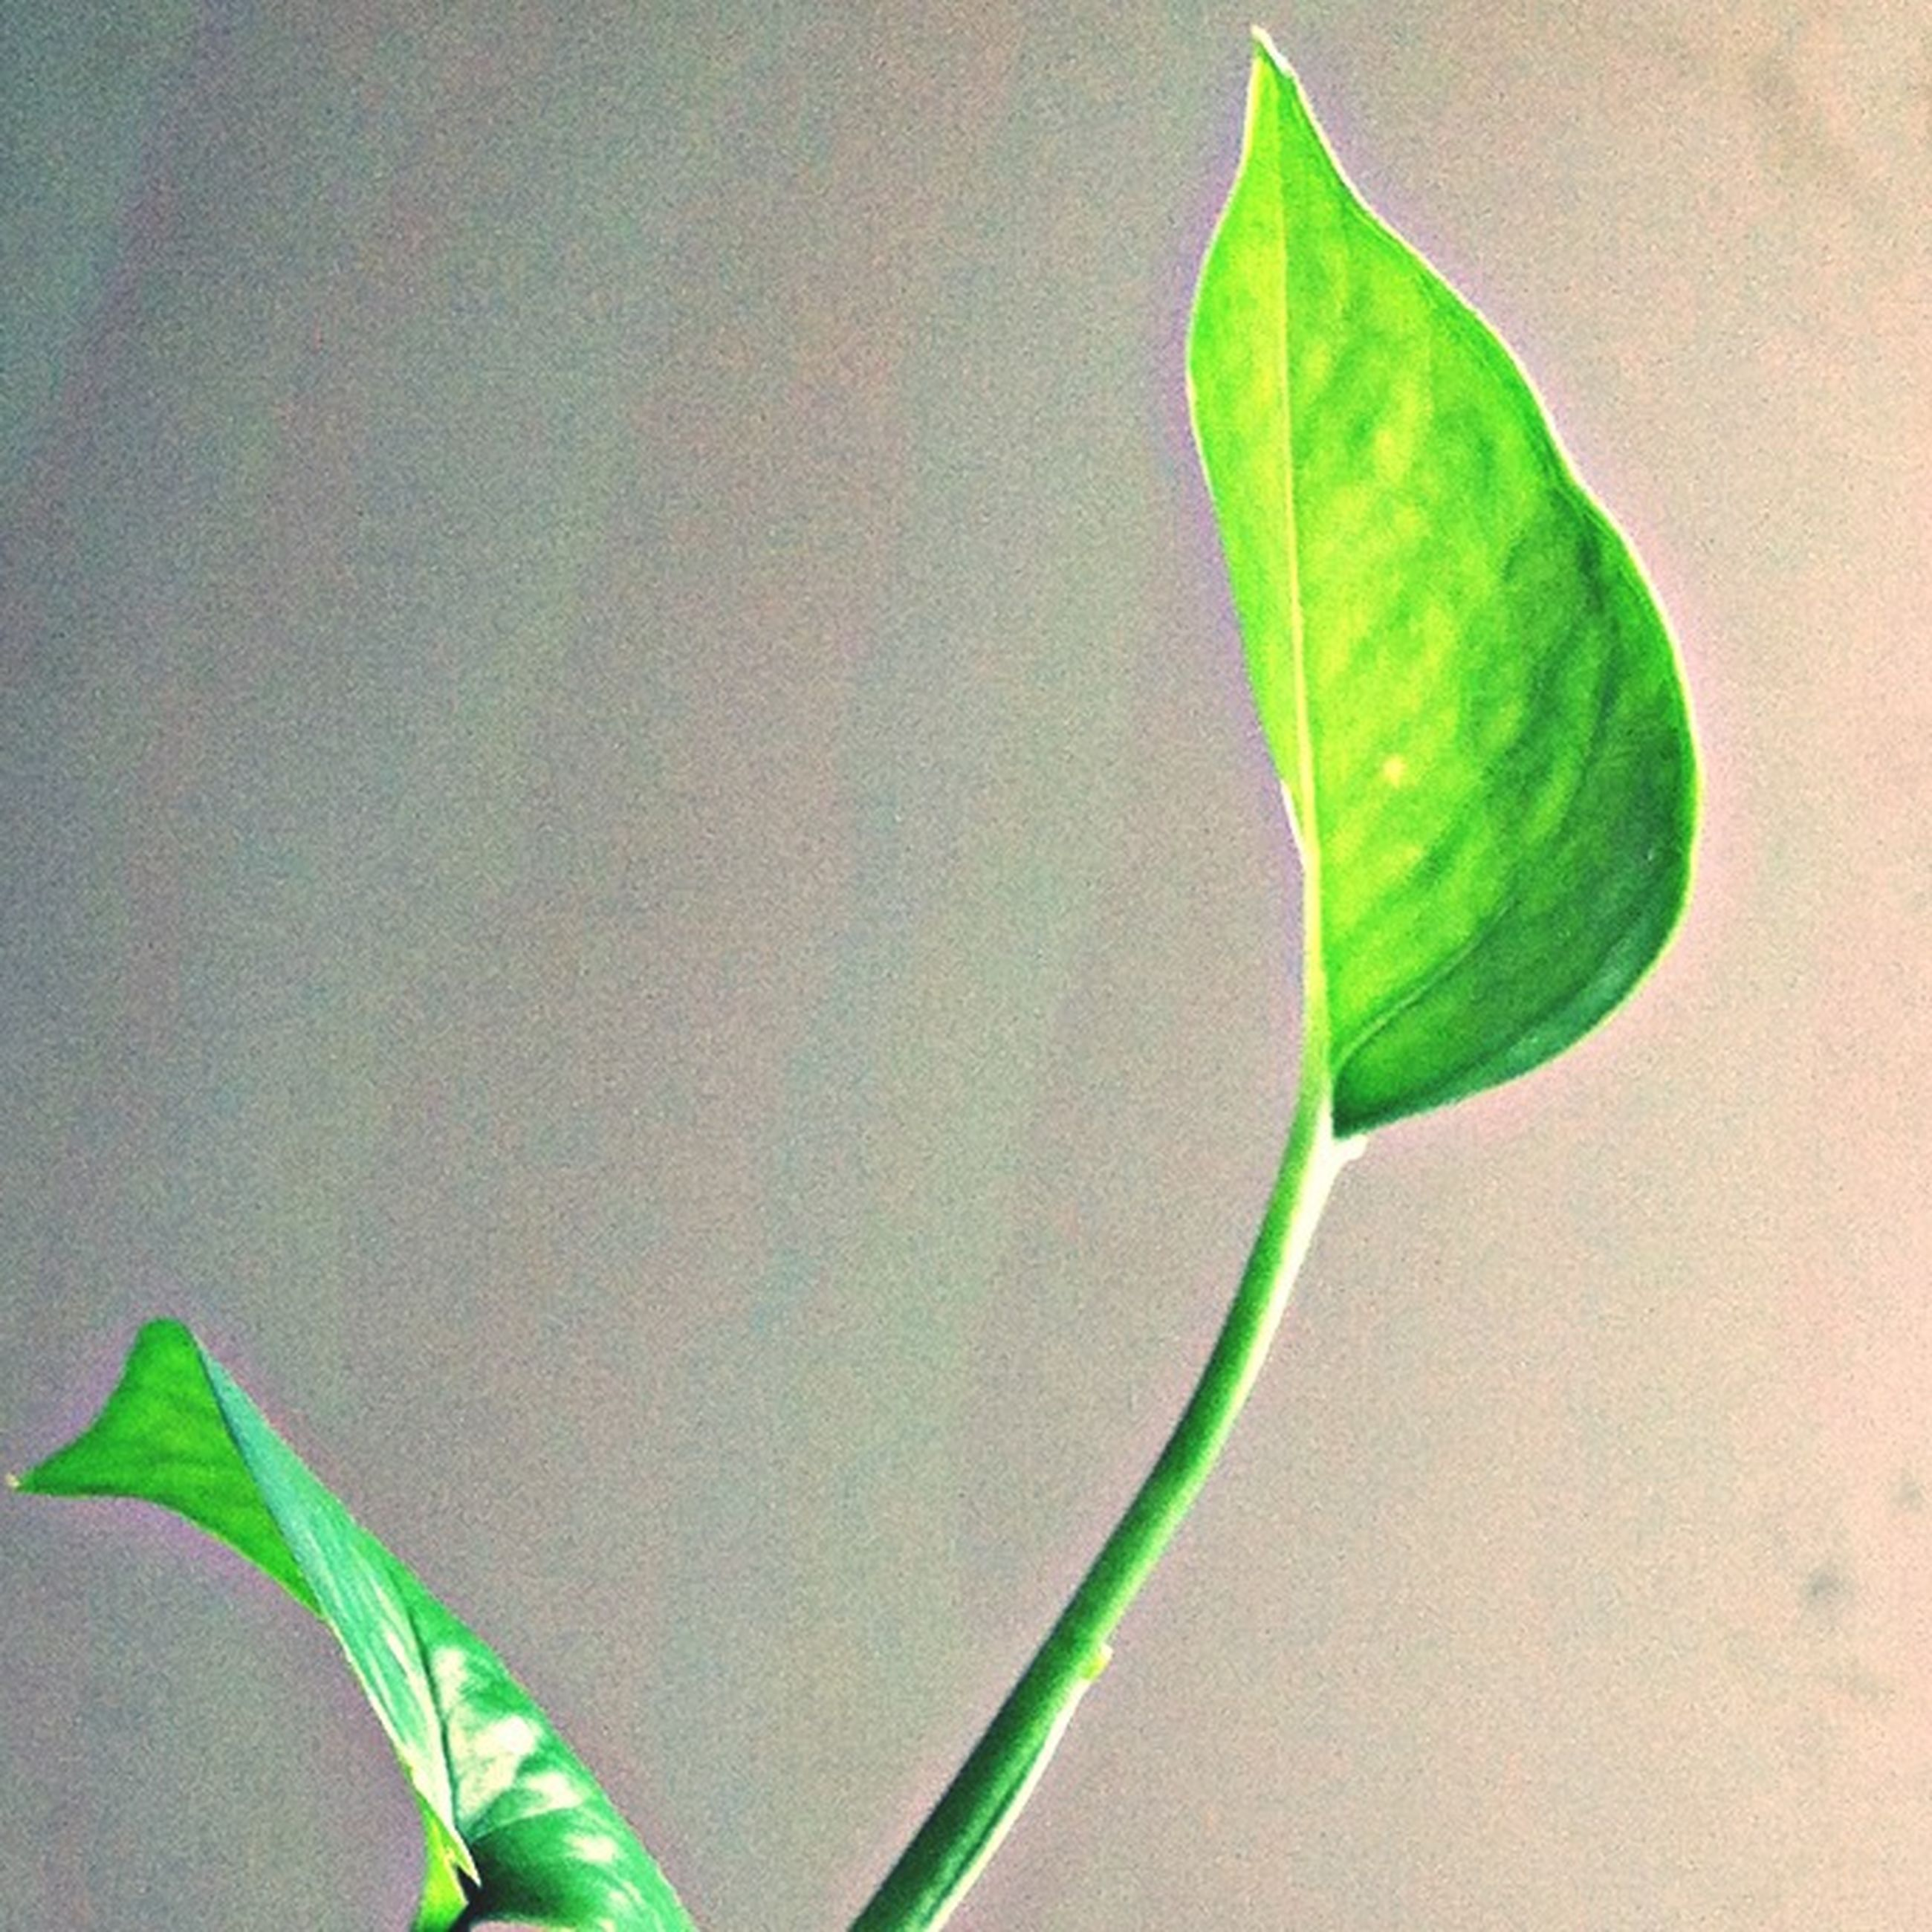 leaf, green color, leaf vein, close-up, stem, plant, nature, green, studio shot, single object, growth, wall - building feature, natural pattern, beauty in nature, fragility, no people, freshness, outdoors, day, copy space